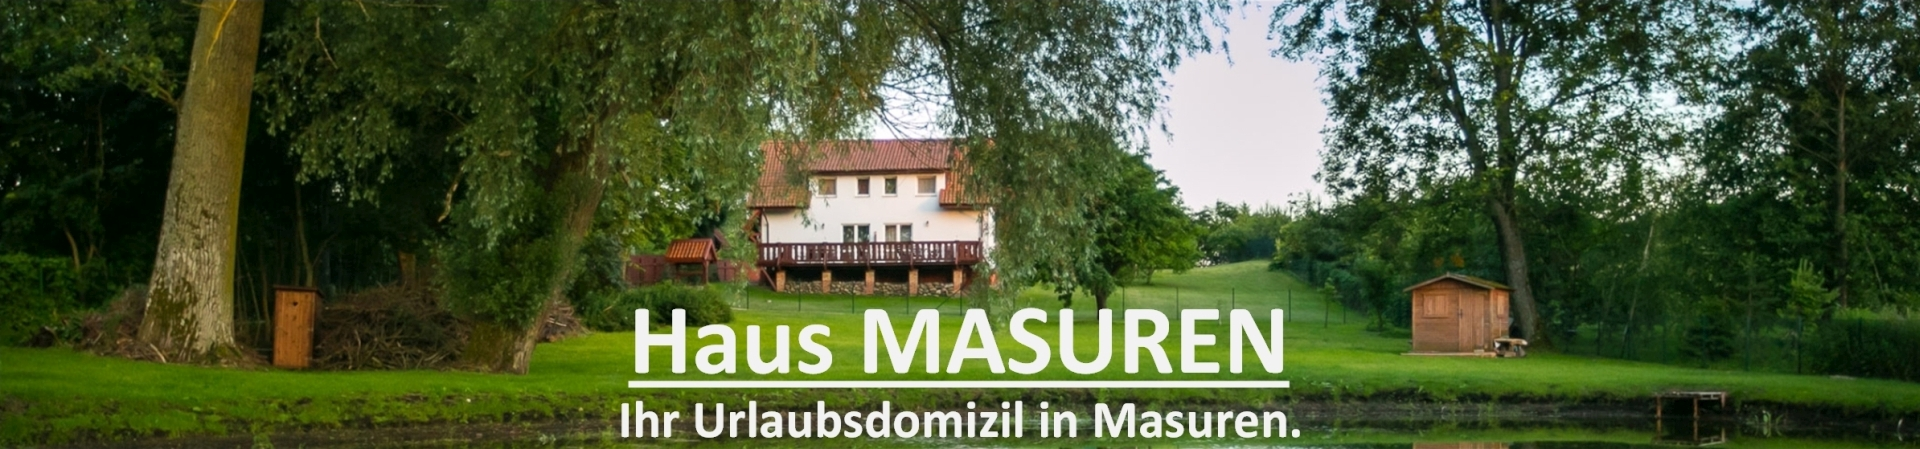 Apartment Haus Masuren in Polen